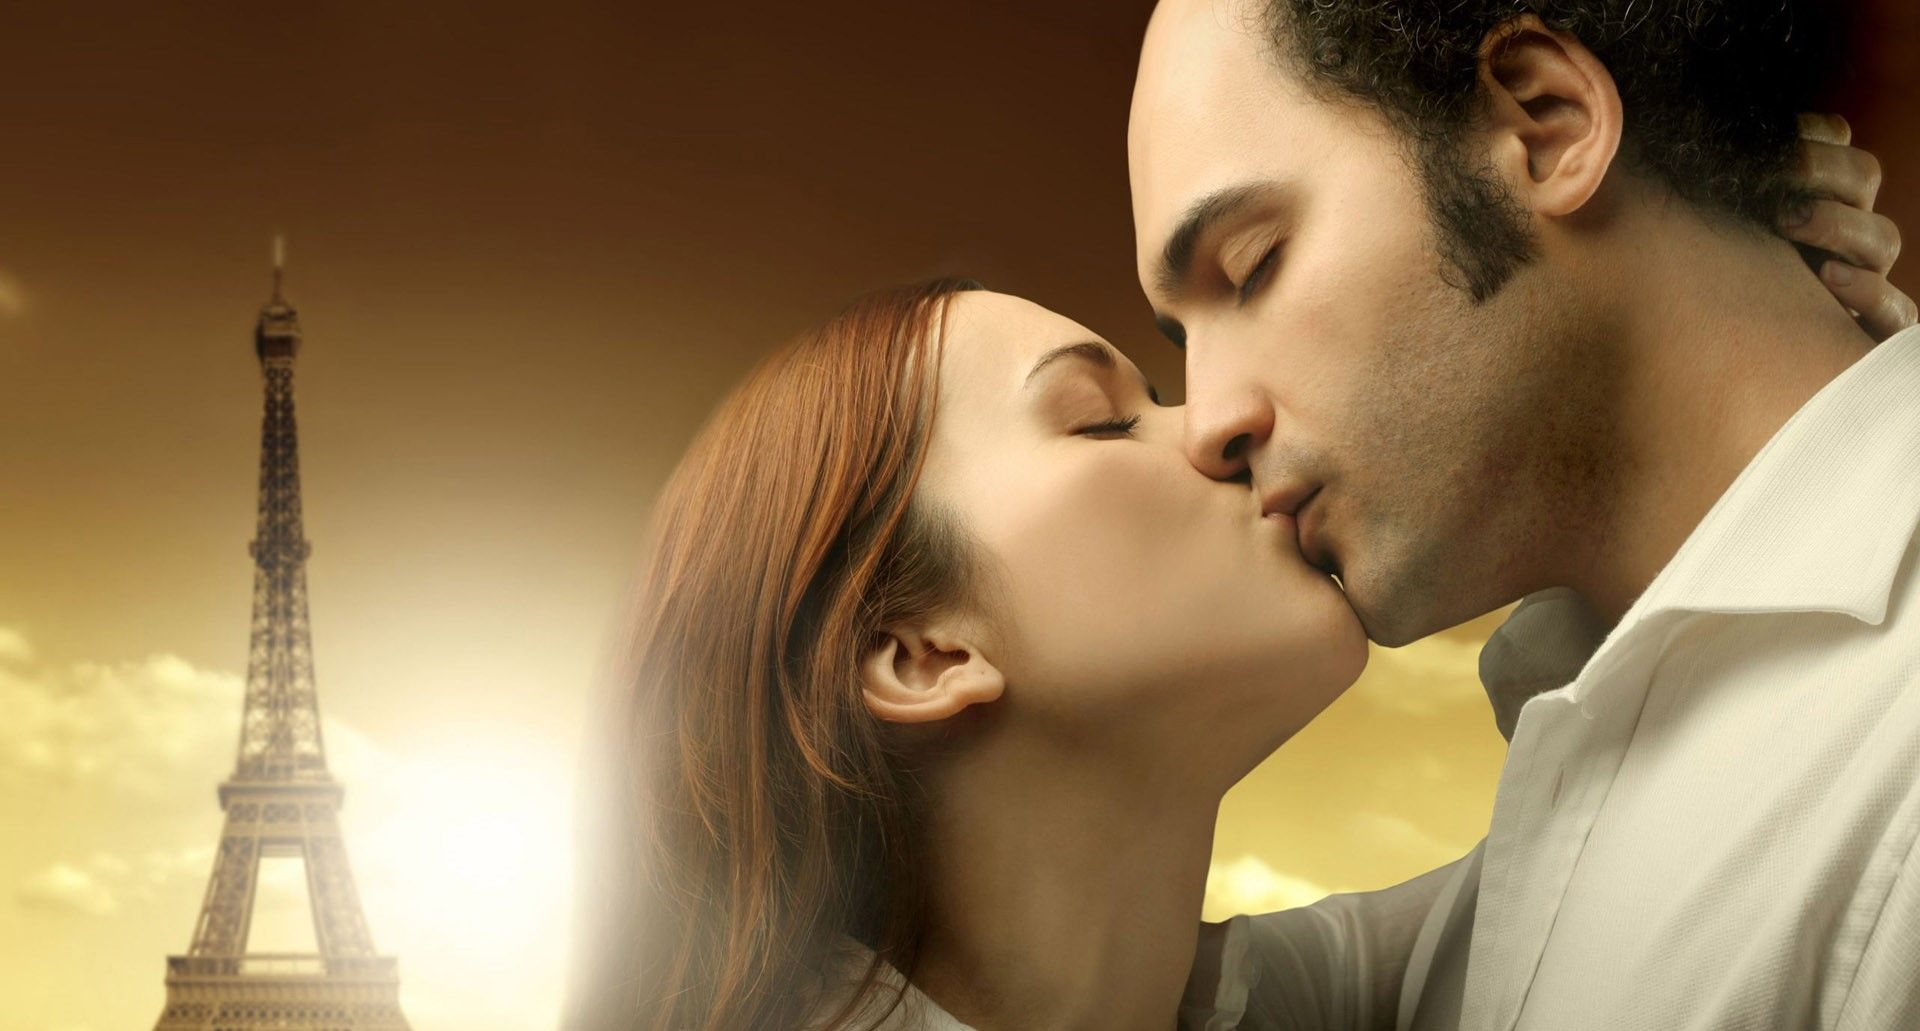 Couple First Kiss Hd P Wallpapers Hd Wallpapers Window Top 1024 768 Kiss Pictures Wallpapers 45 Wallpapers Adorable W Kiss Pictures Kissing Clips Kiss Day